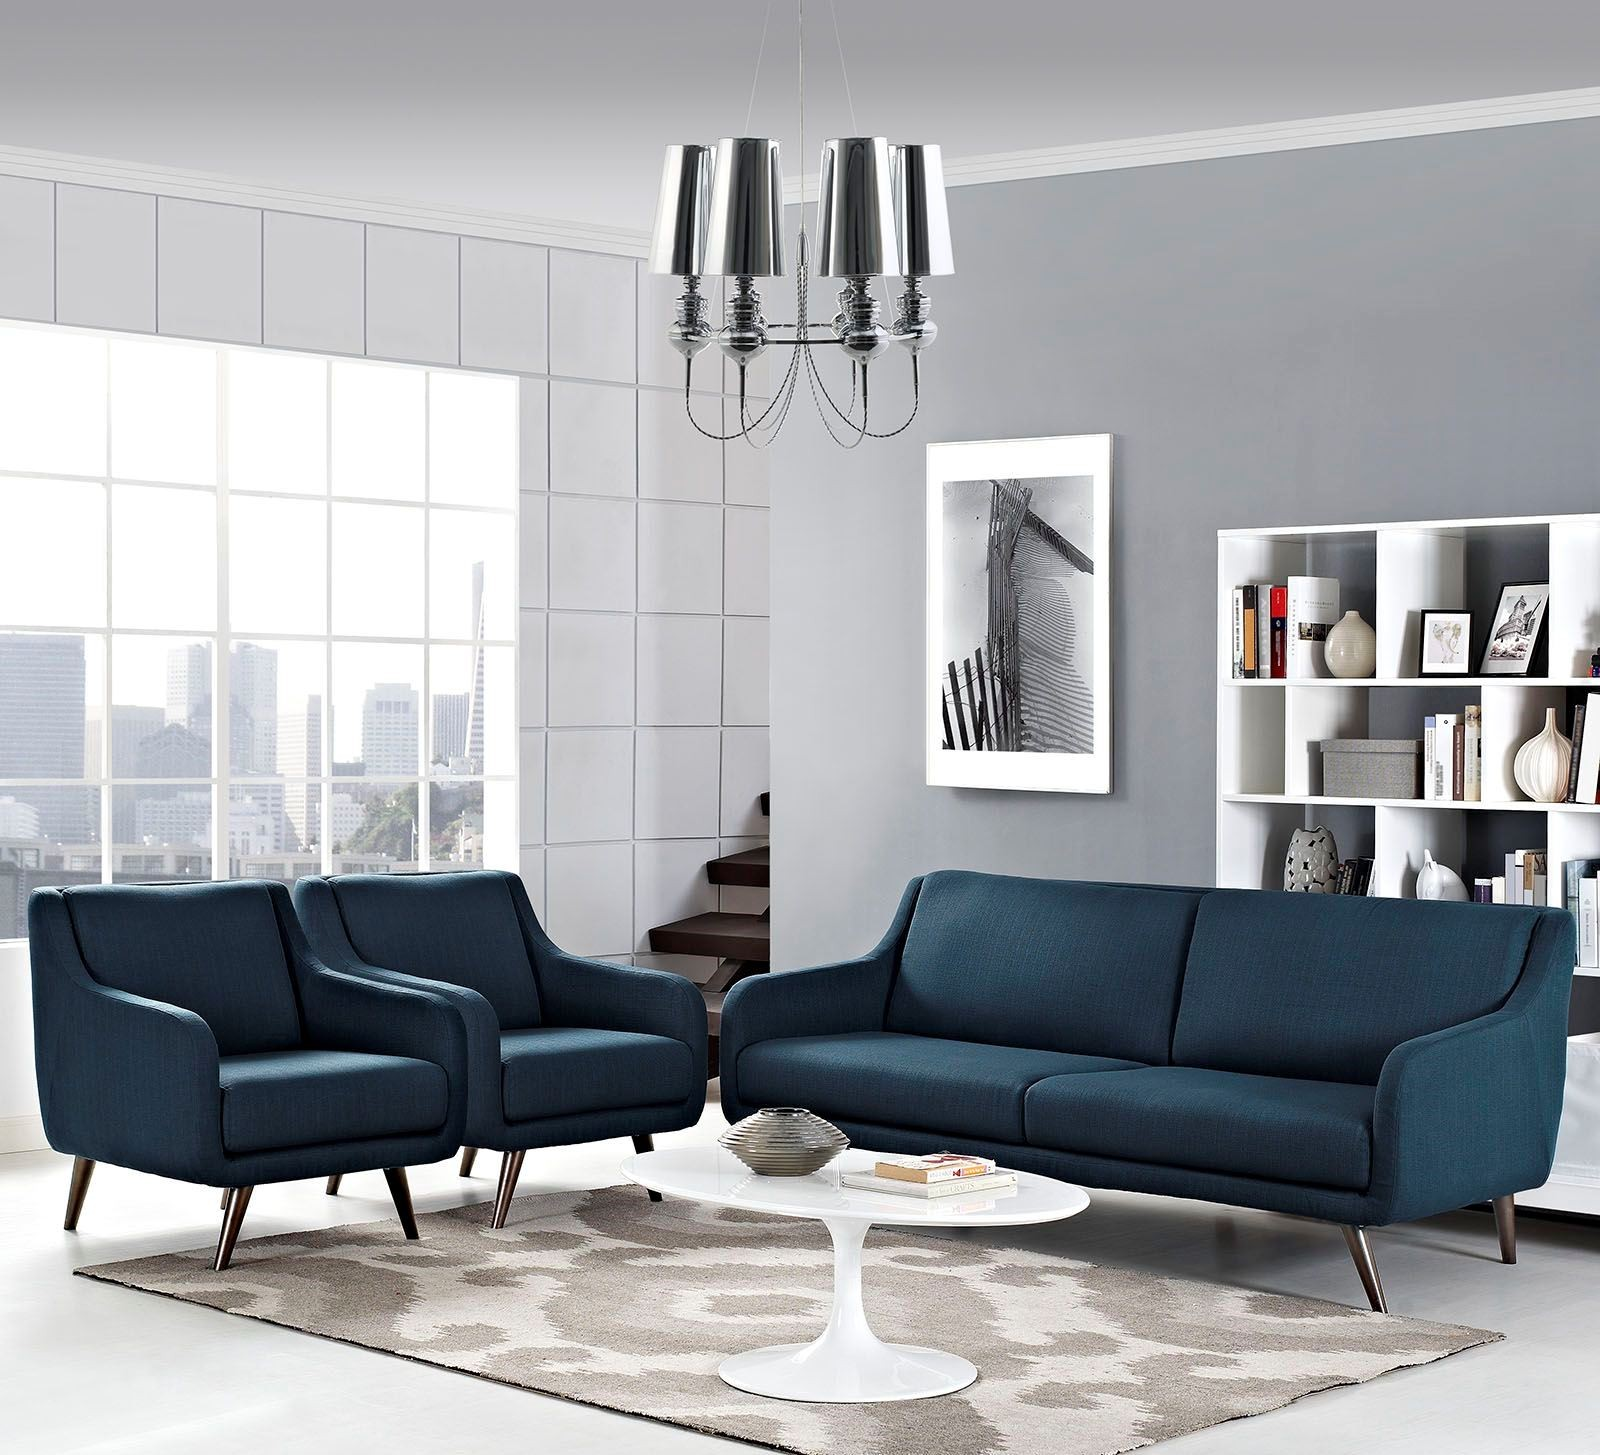 Verve azure 3 piece living room set from renegade for 3 piece living room set